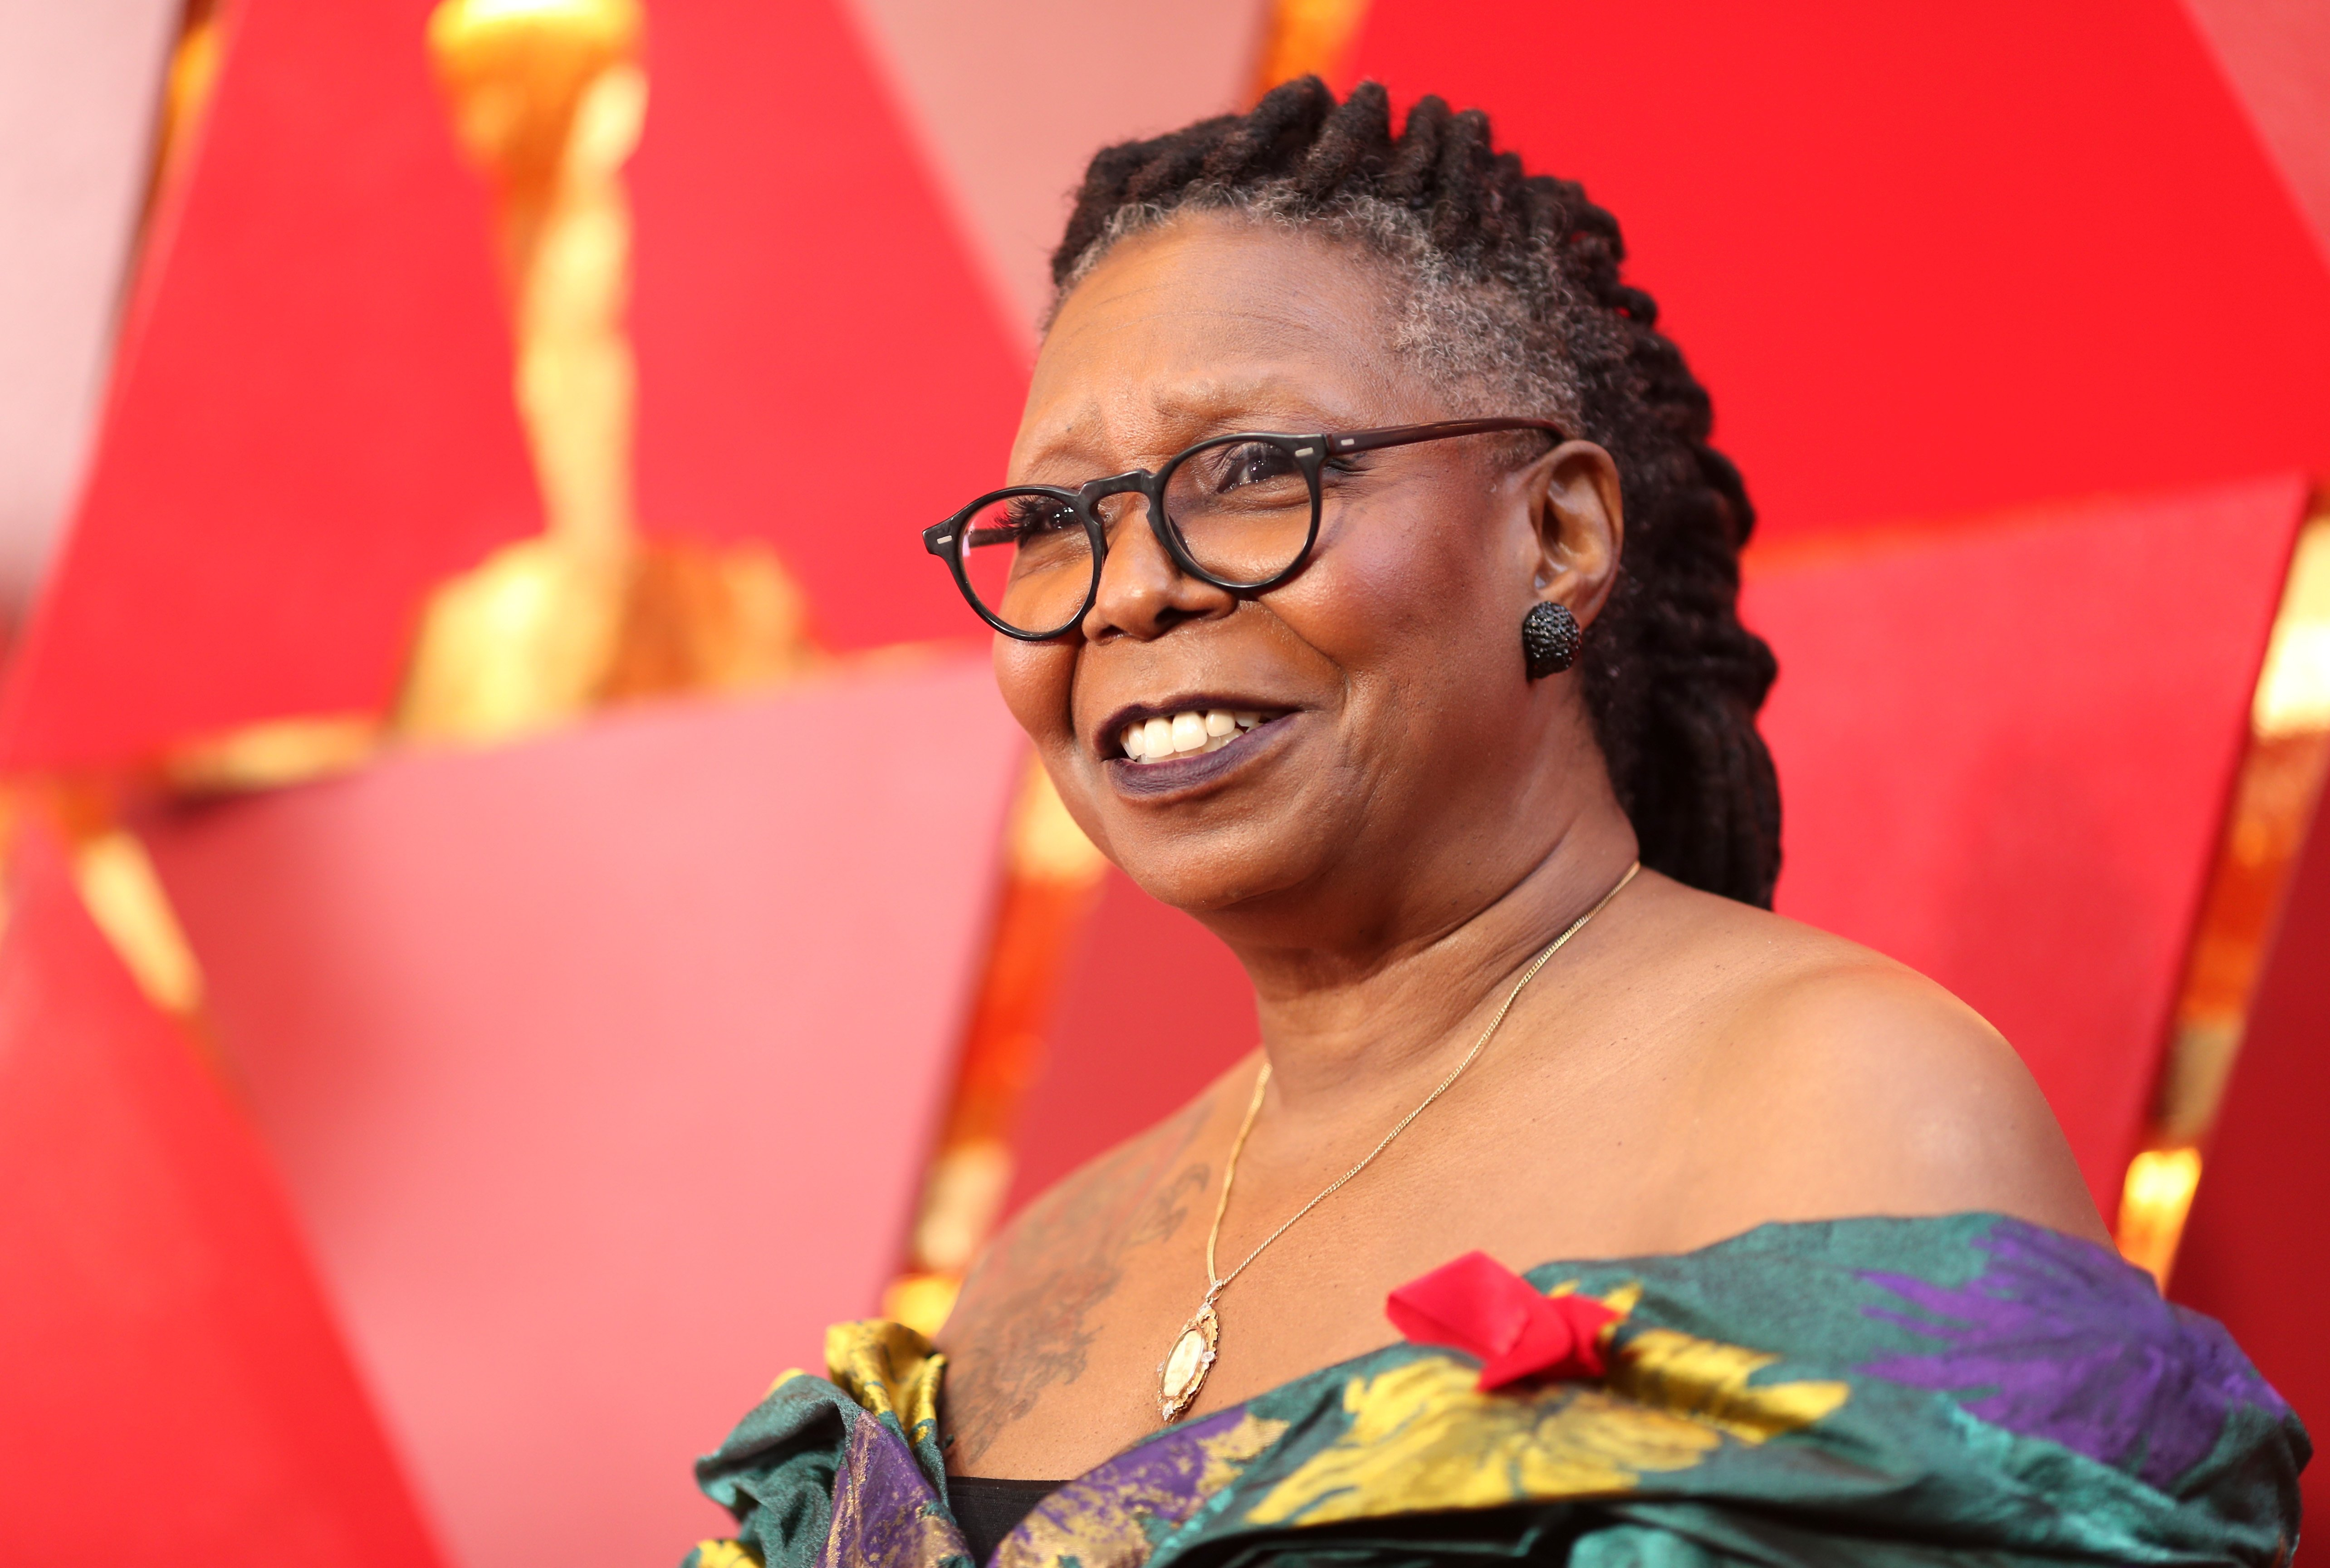 Whoopi Goldberg attends the 90th Annual Academy Awards at Hollywood & Highland Center in Hollywood, California | Photo: Getty Images